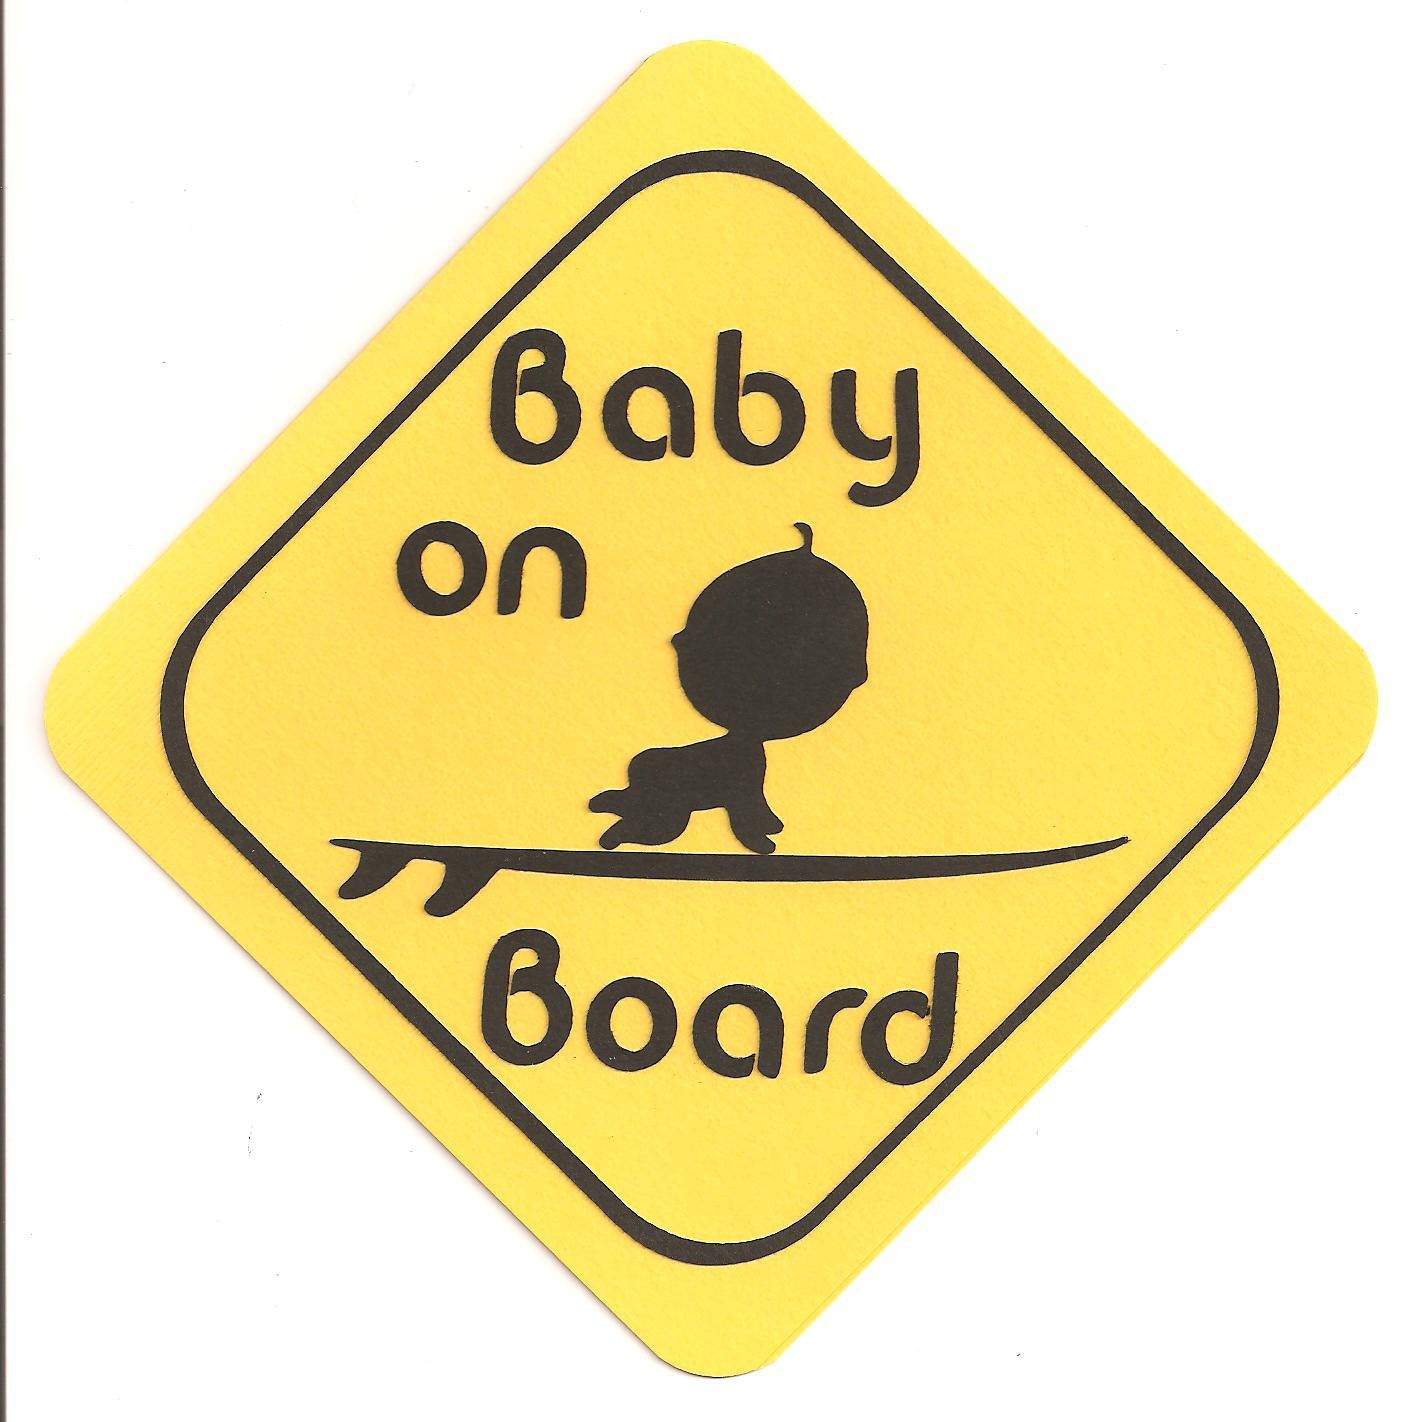 Baby on board card by mbsquareddesigns on etsy via etsy - Baby jungenzimmer ...